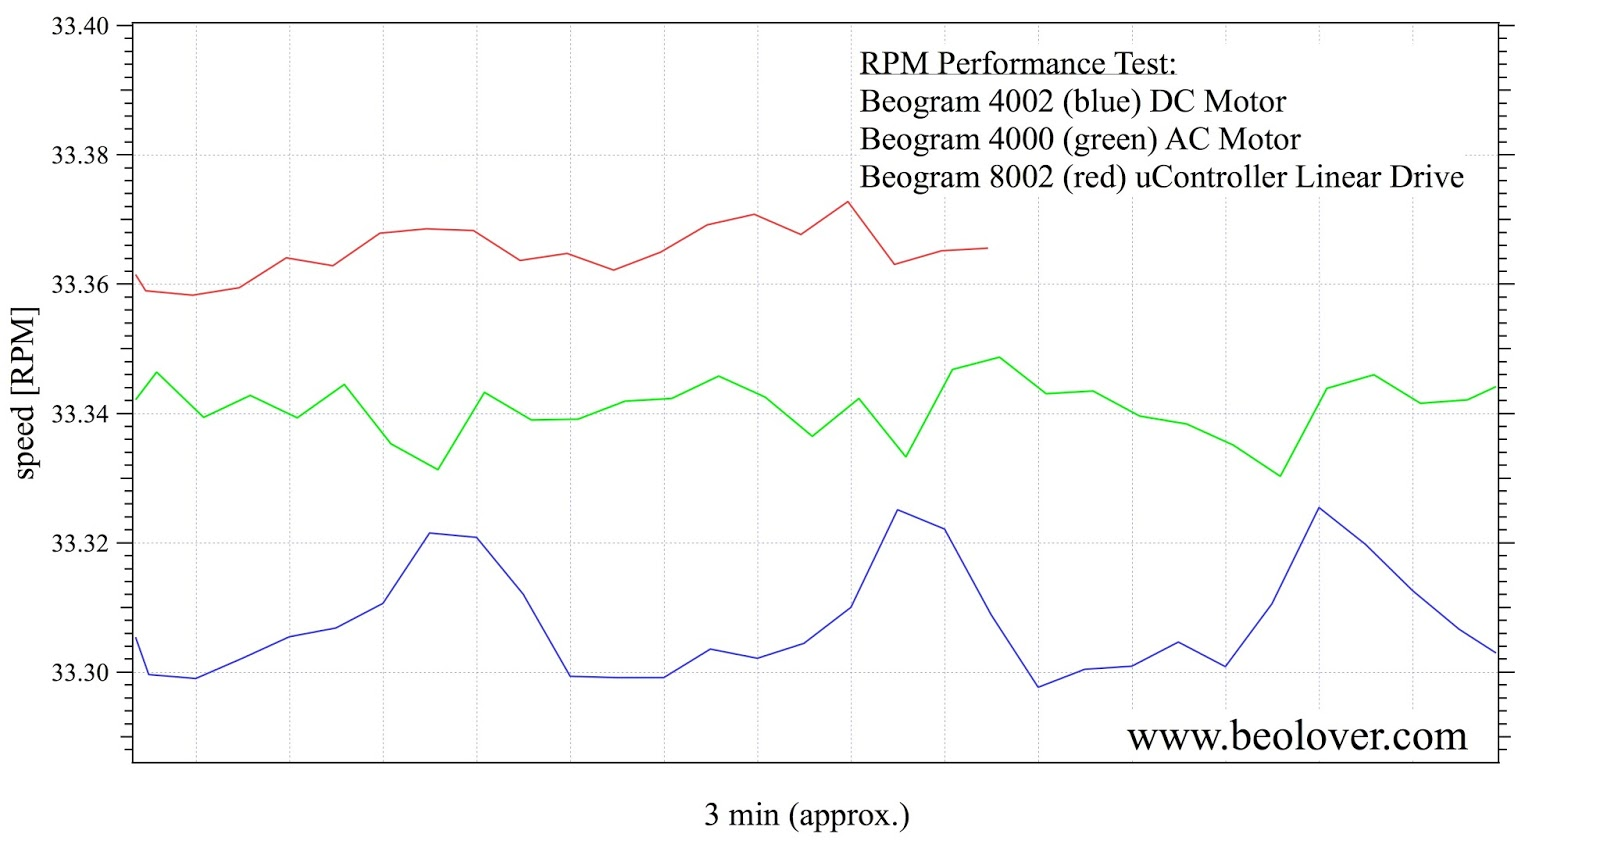 beolover: Beogram 4000: RPM Performance Test